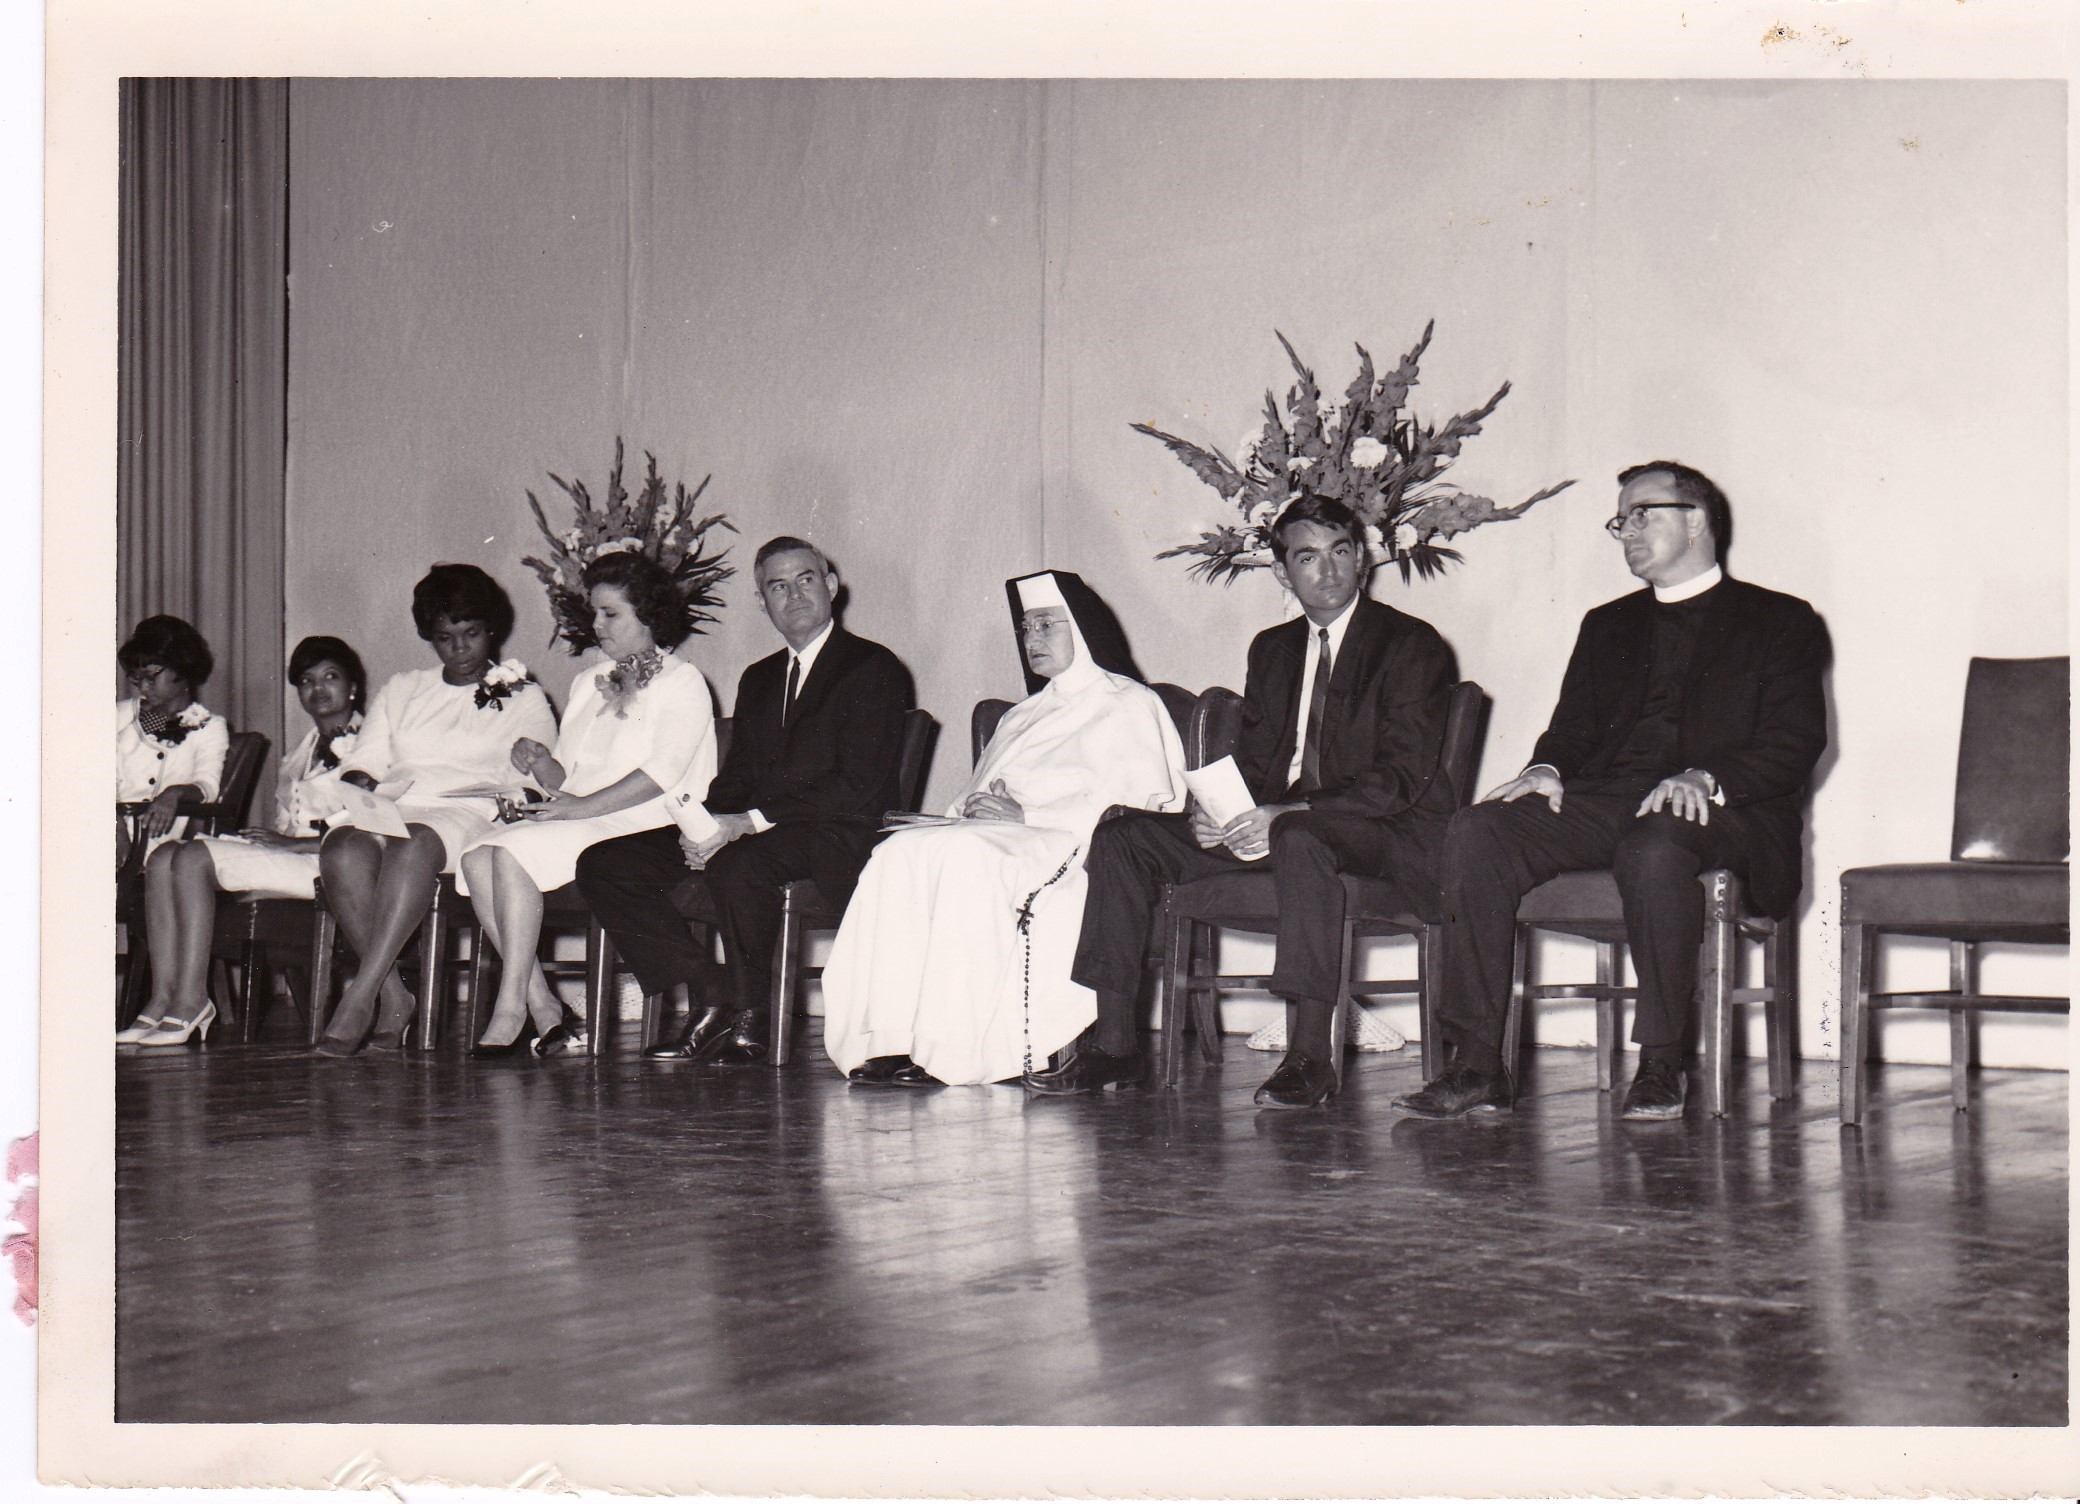 '66 Cheryl Tyler, Myralin LaCabe, Gohn Johnson, Alice Geoffray, Alden LaBorde, Sr. Louise OP, John Whalen and Father Timothy Gibbons